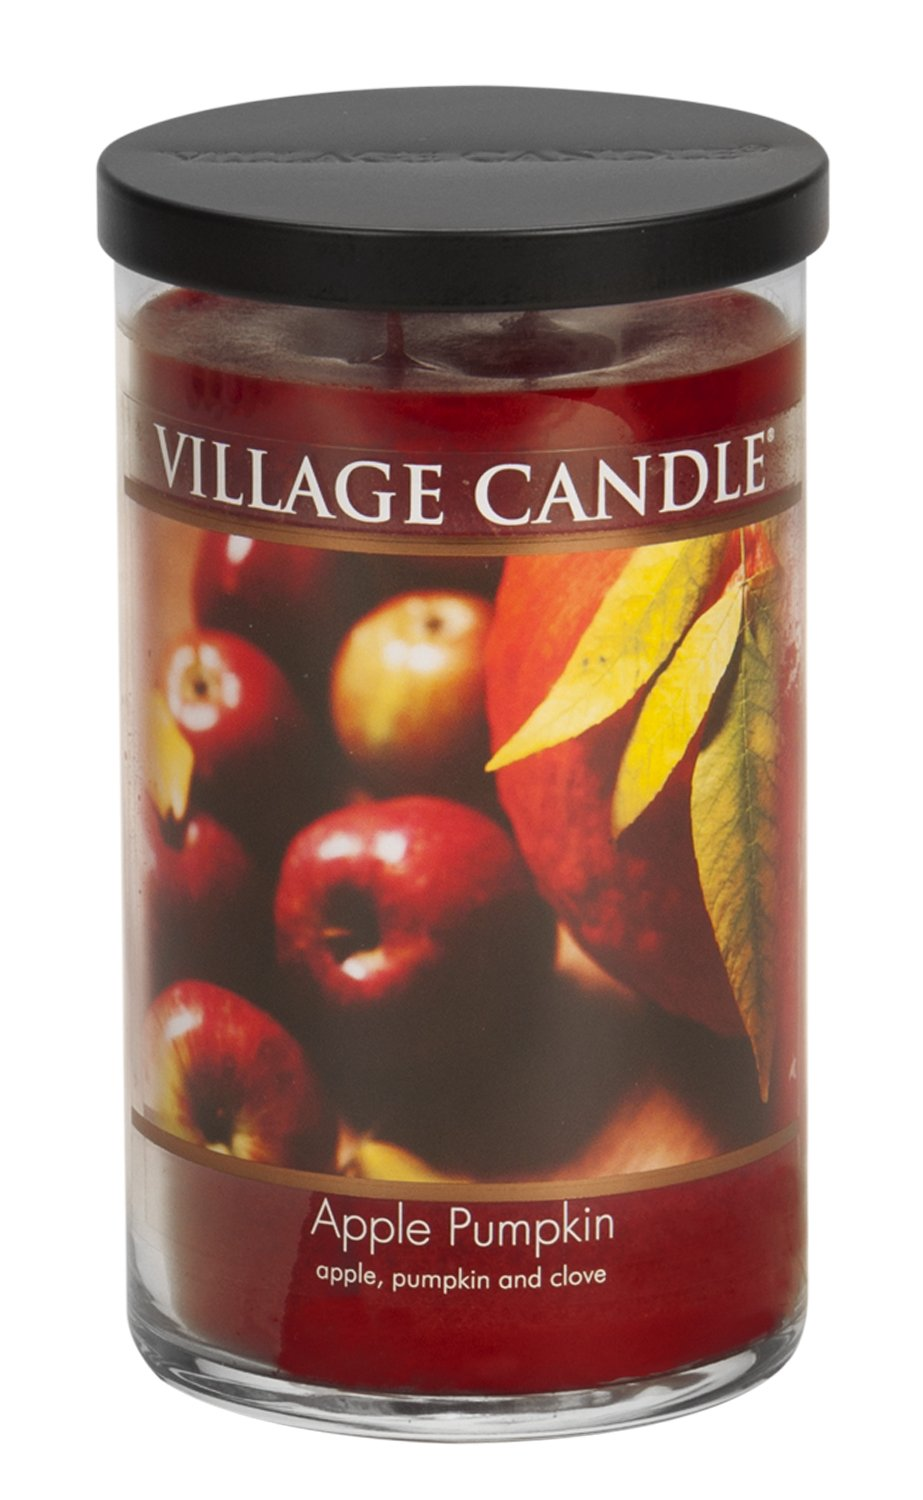 Village Candle Apple Pumpkin 24 oz Glass Tumbler Scented Candle, Large by Village Candle